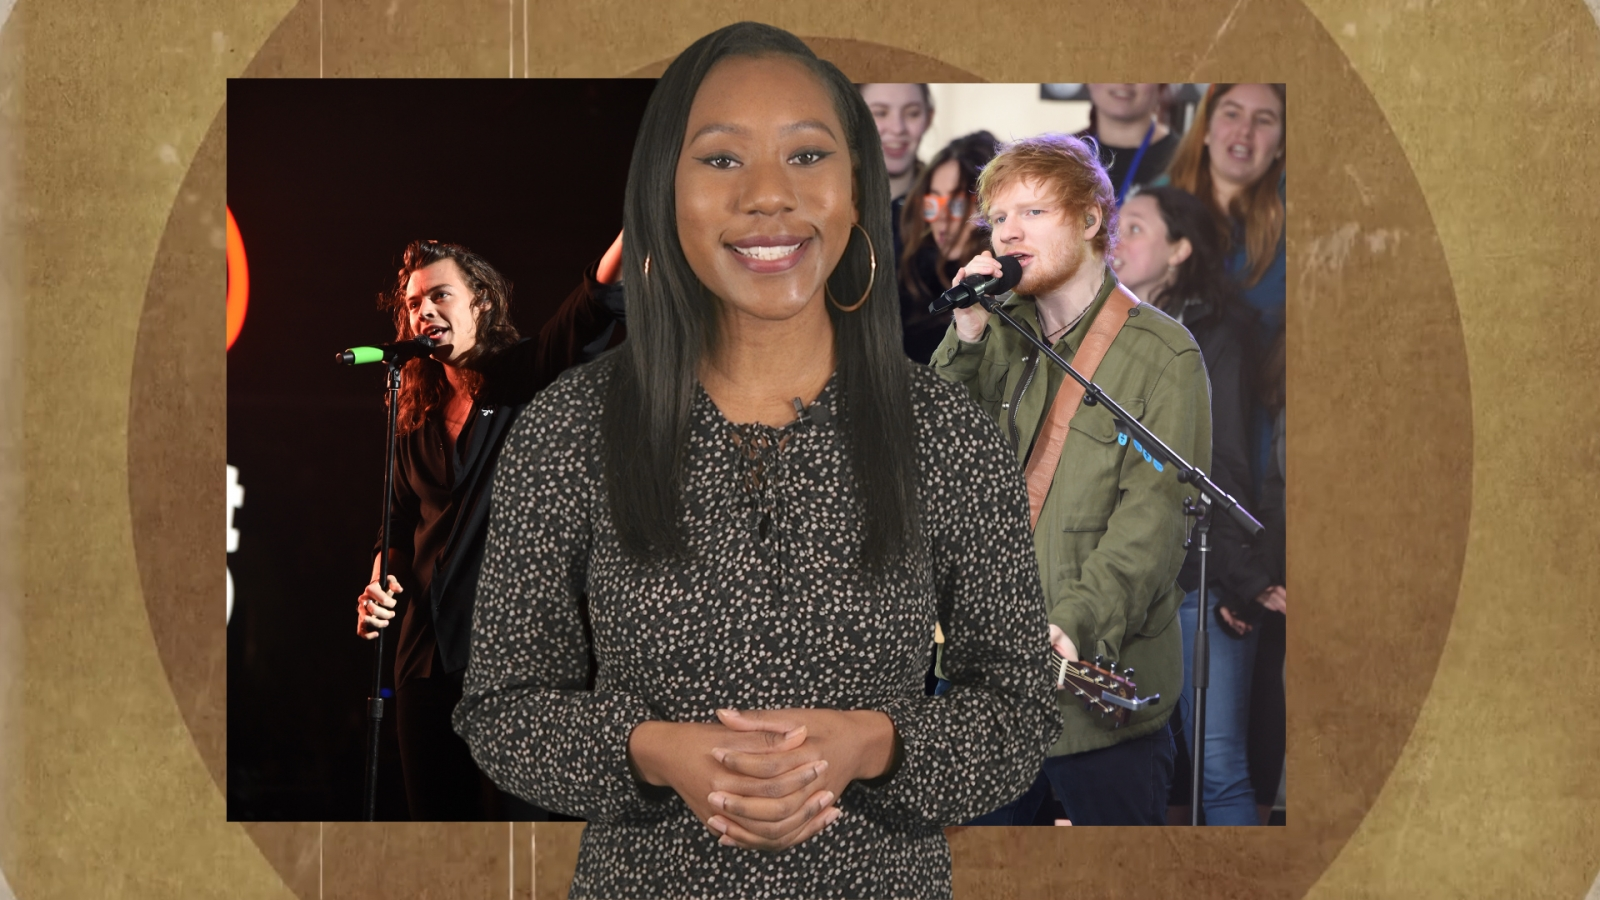 Music Minute: Harry Styles makes solo debut, Ed Sheeran headlines Teenage Cancer Trust concert